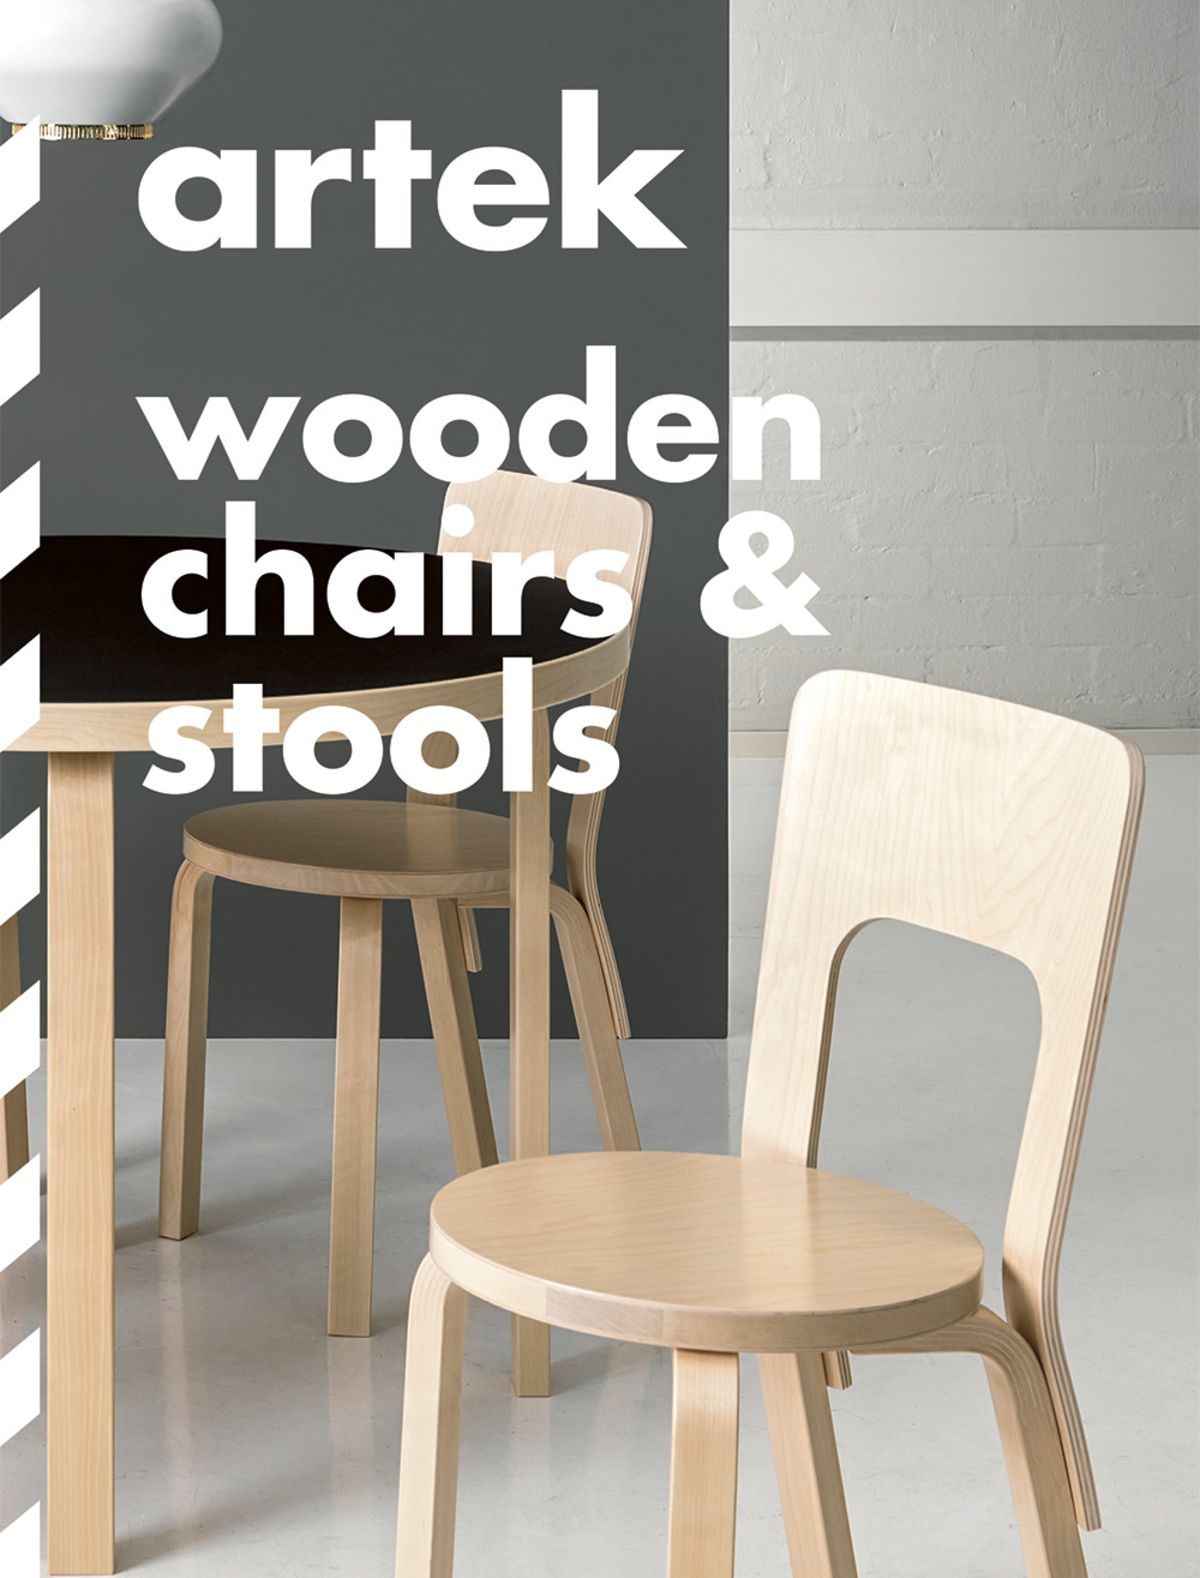 Artek_Wooden_Chairs_Stools_Preview